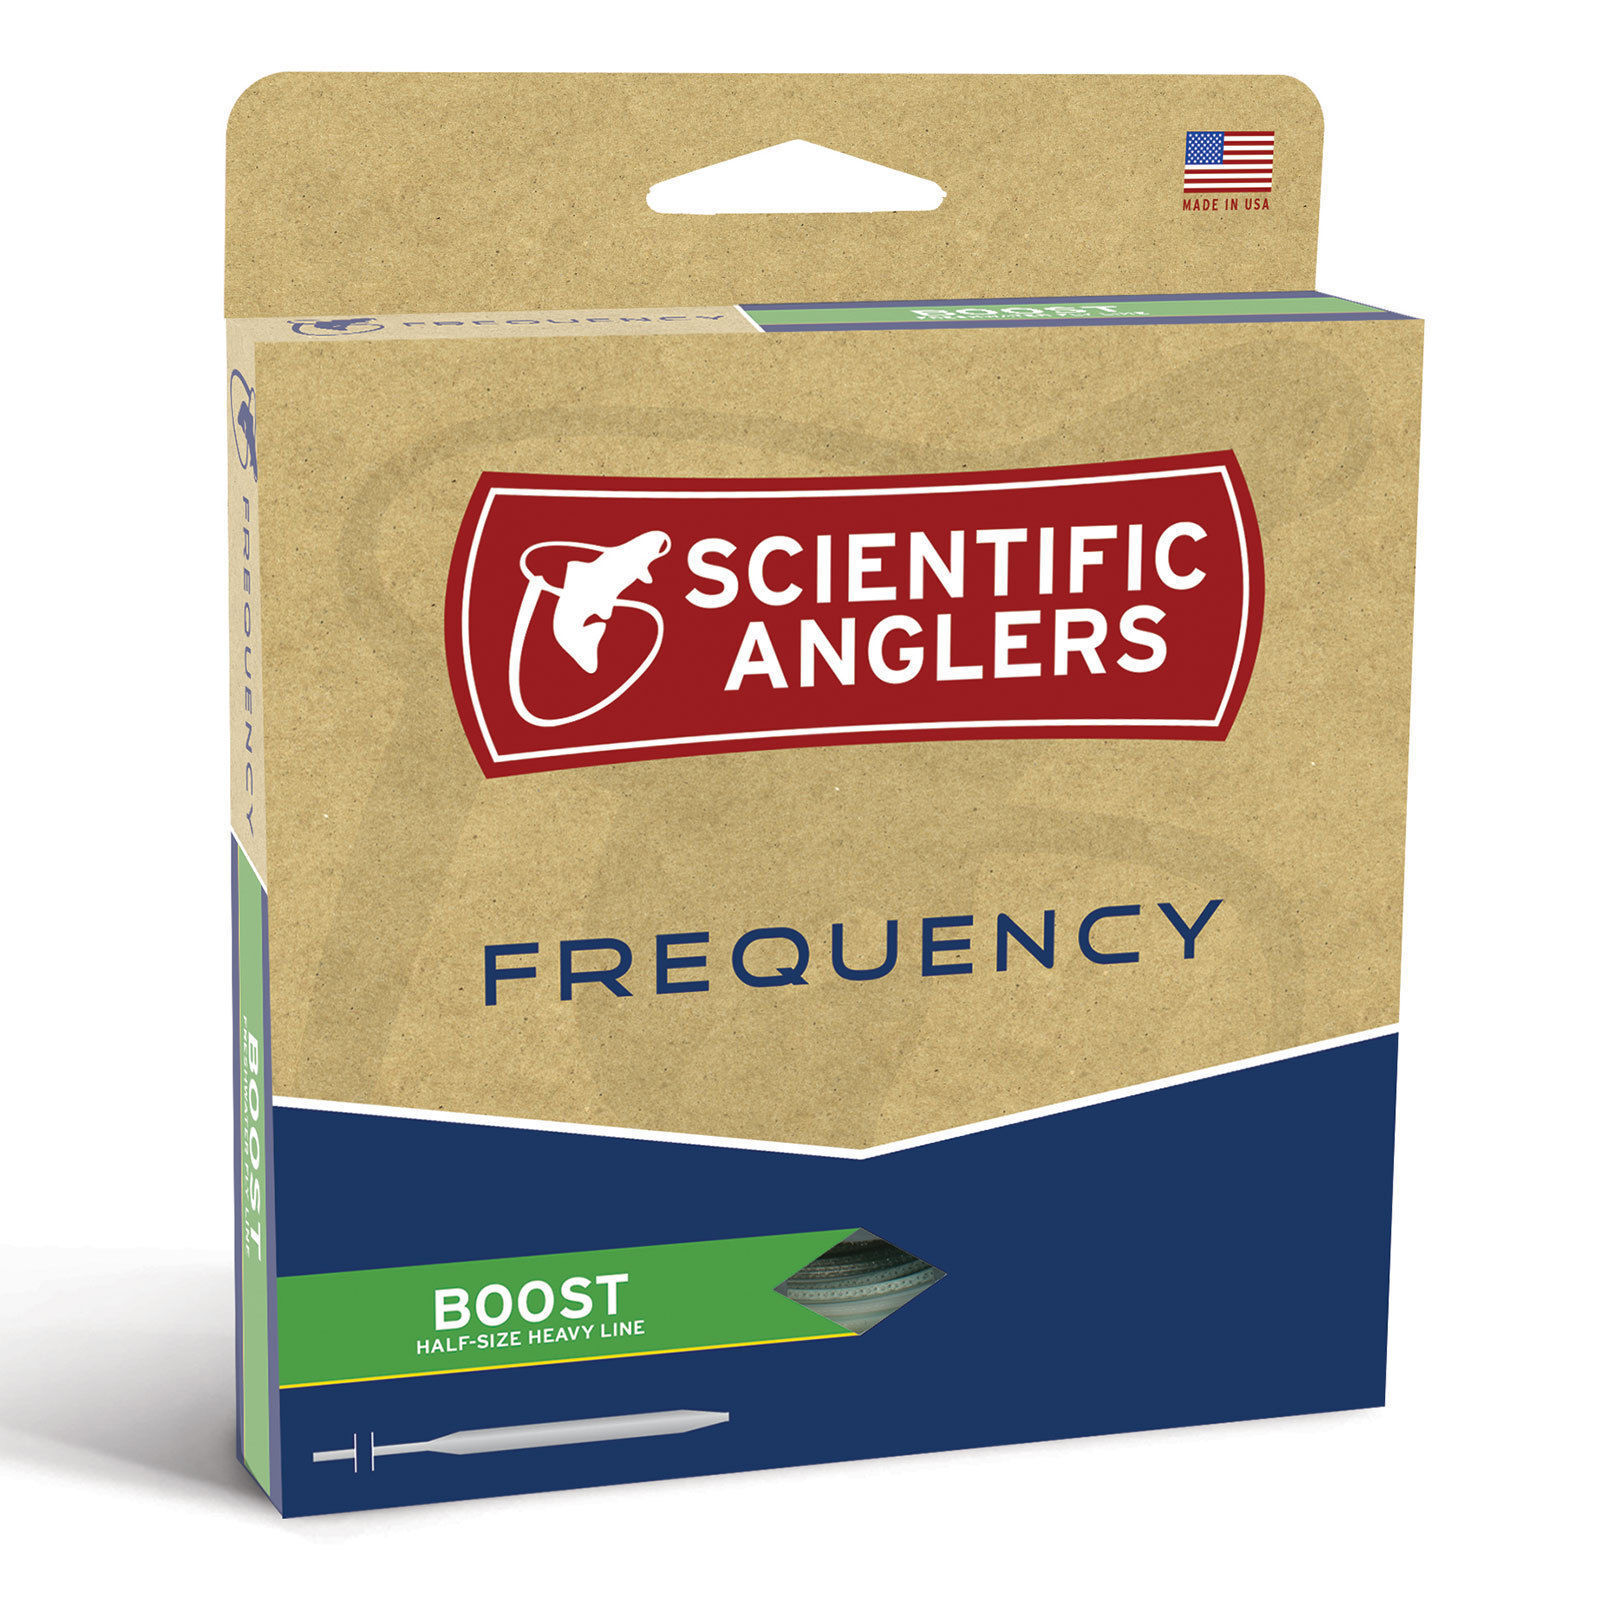 SCIENTIFIC ANGLERS FREQUENCY BOOST WF-4-F WEIGHT FLY LINE 1 2 SIZE HEAVY